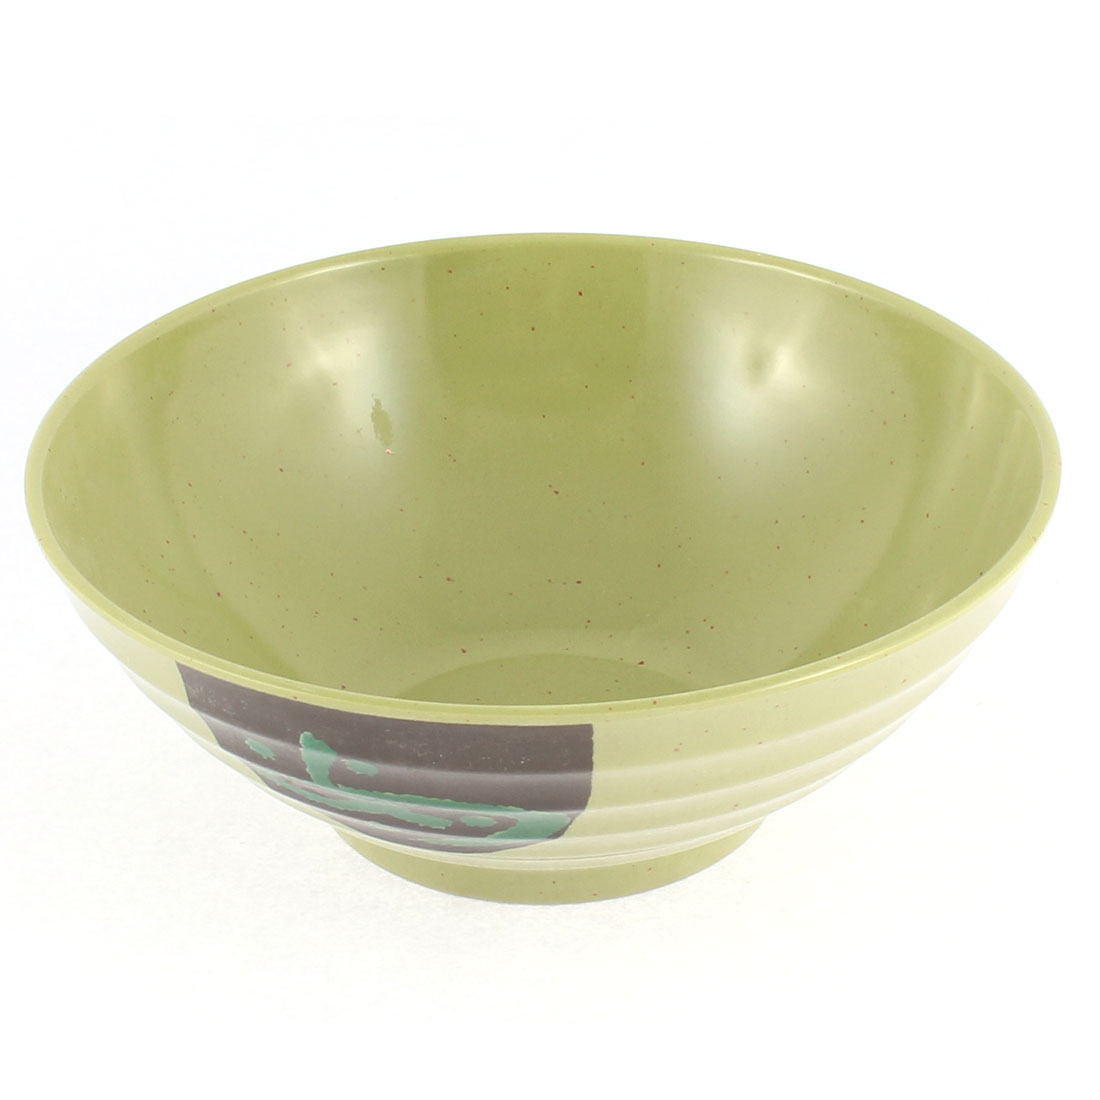 "Restaurant Salad Fruit Dessert Container Serving Bowl 7.5"" Dia"